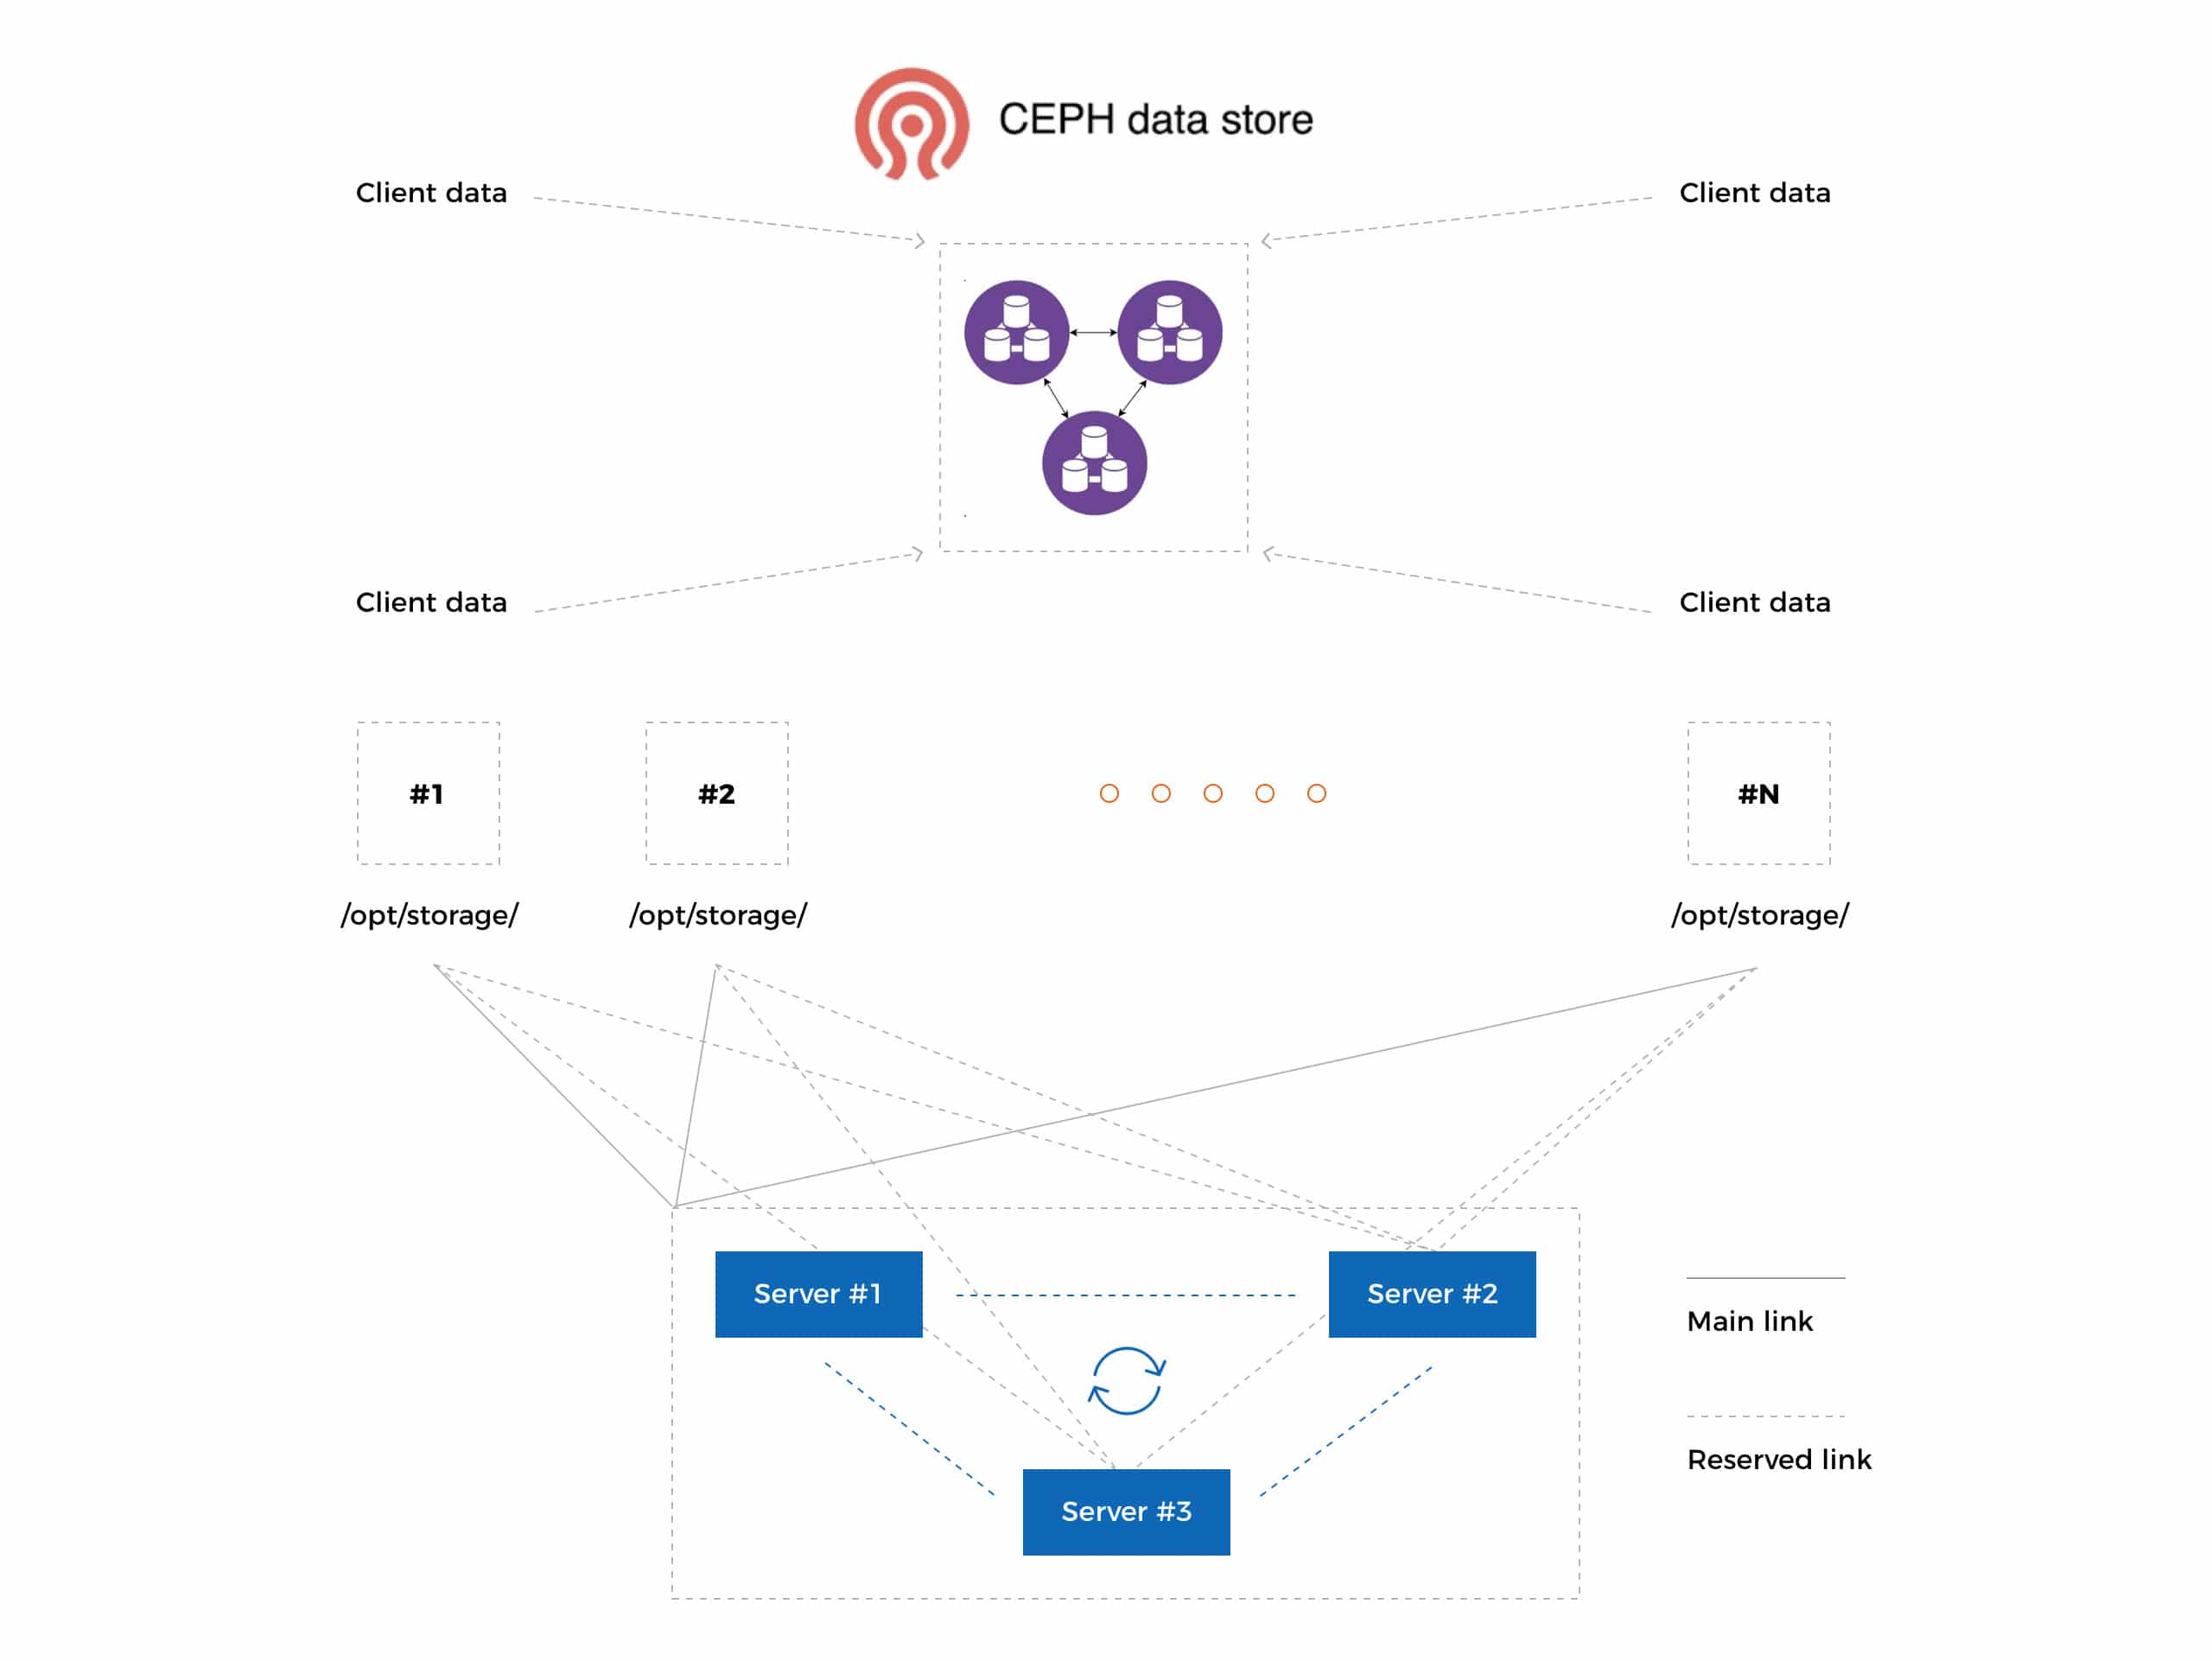 CEPH data store diagram